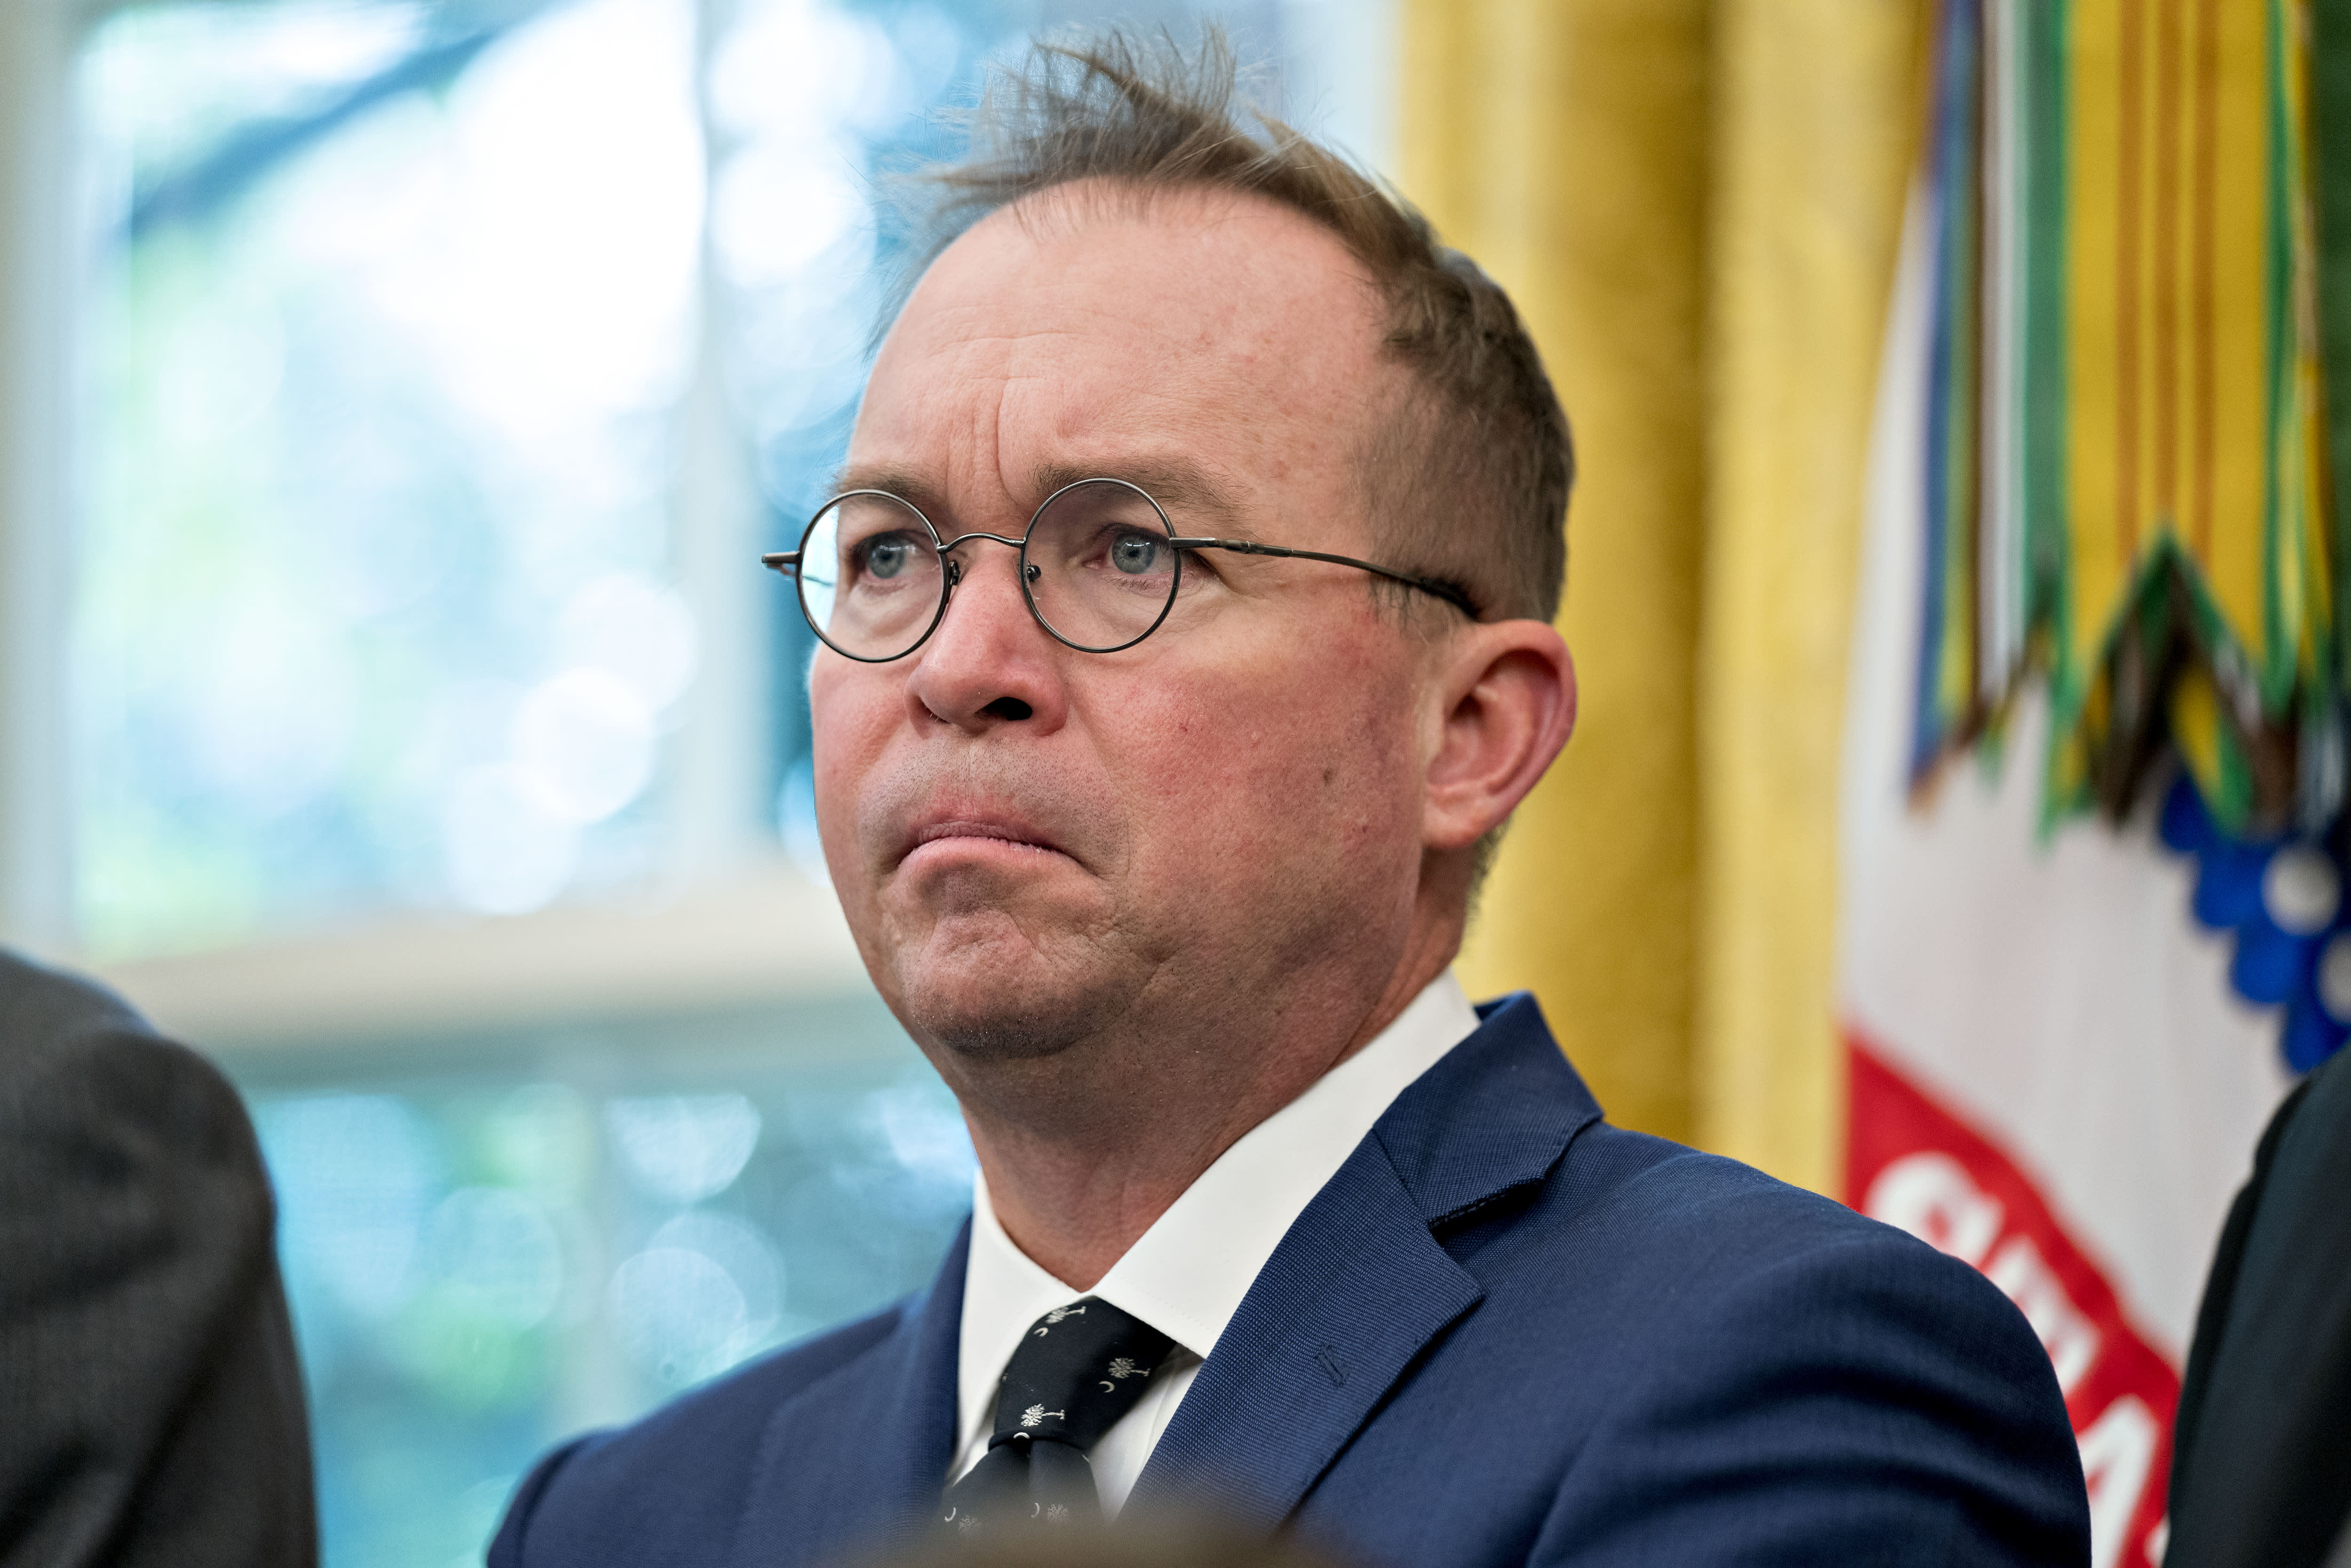 Mick Mulvaney aims to install ally as head of legislative affairs which could give him more control of agenda